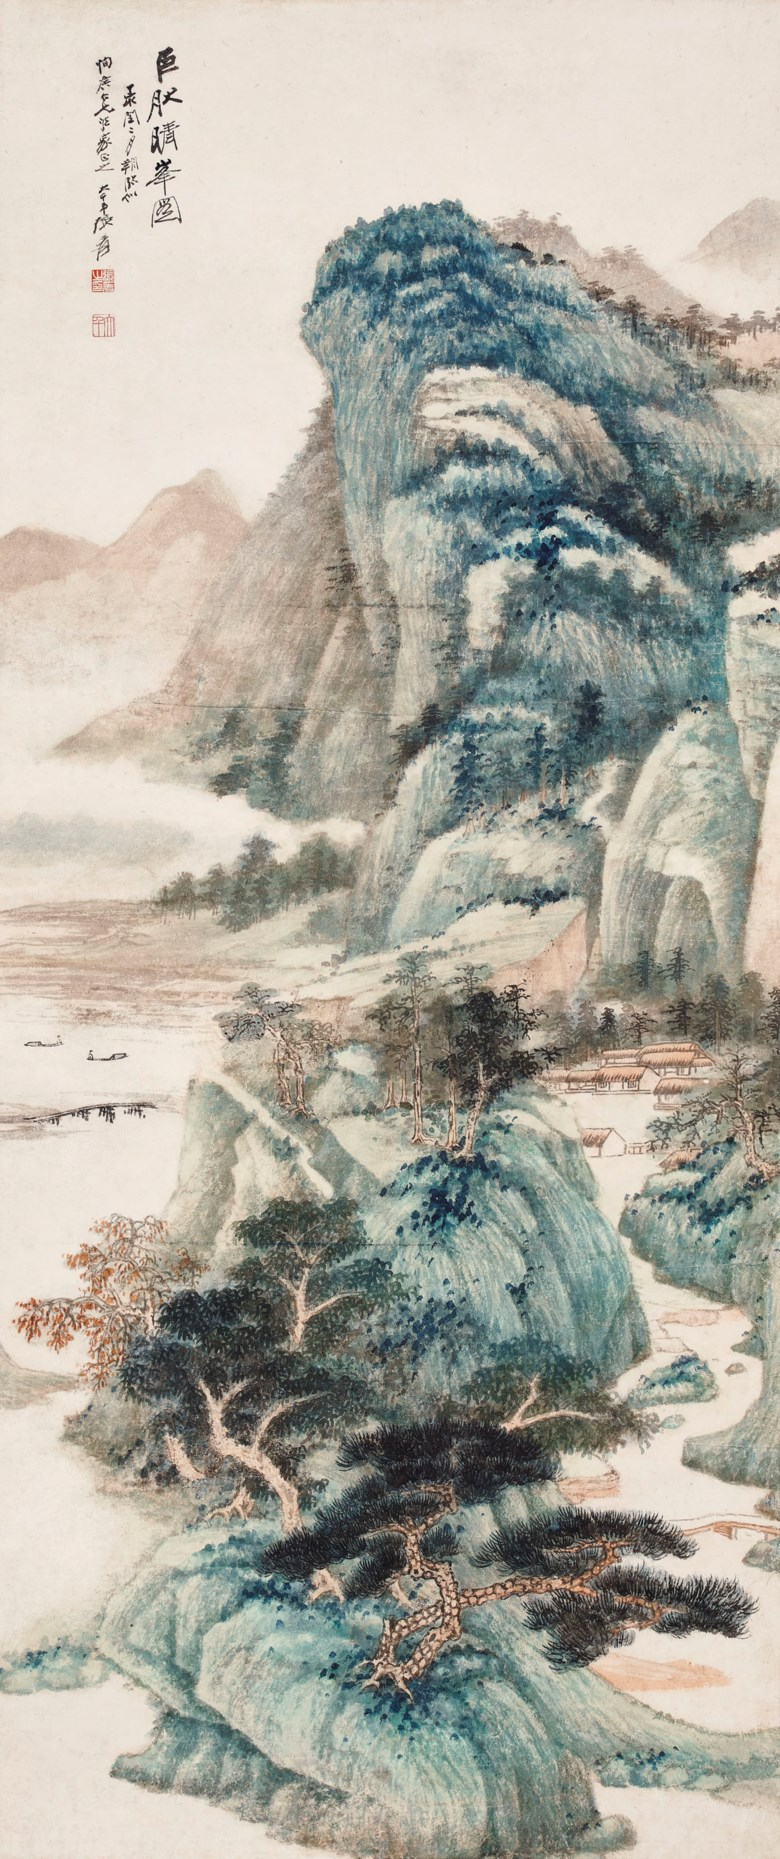 Zhang Daqian (1899-1983), Landscape after Juran. Scroll, mounted and framed, ink and colour on paper.  117.5 x 49.5 cm. (46 14 x 19 12 in.). Estimate HK$8,000,000 - 12,000,000. Offered in Fine Chinese Modern and Contemporary Ink Paintings on 27 May 2021 at Christie's in Hong Kong